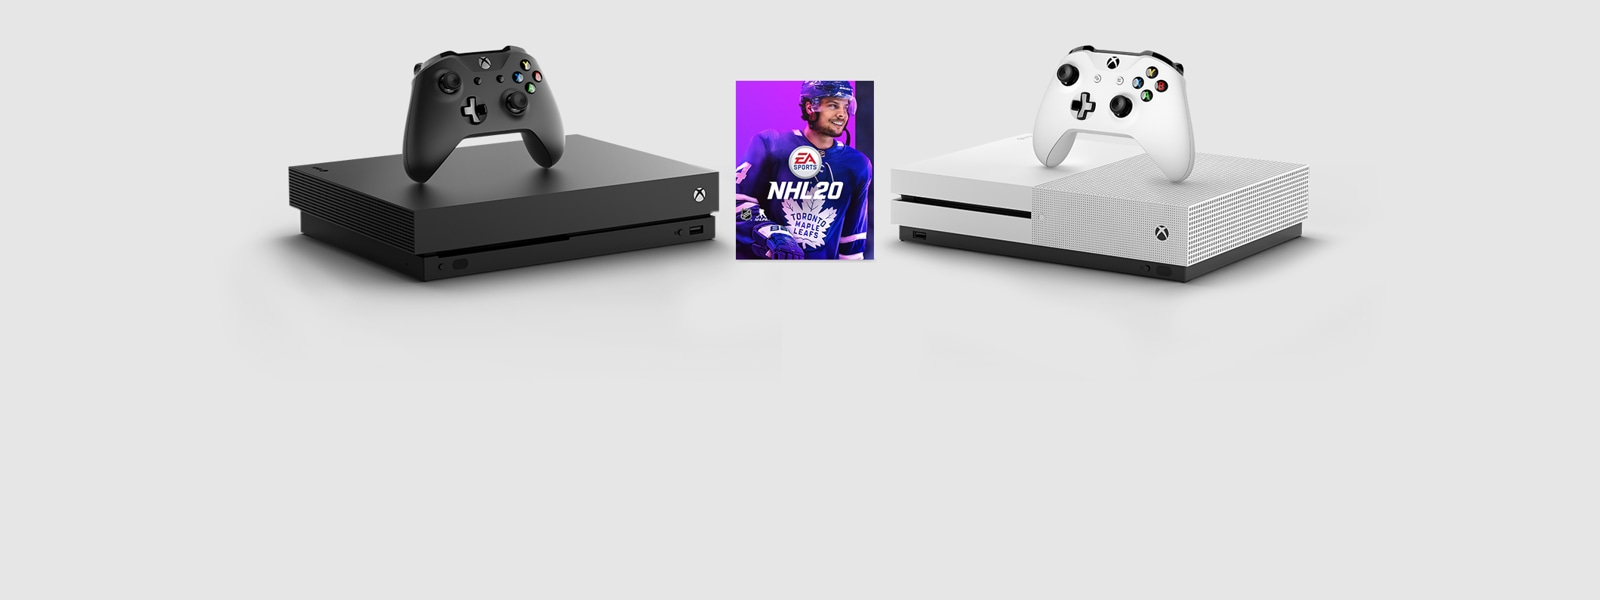 Xbox One X and Xbox One S consoles with NHL20 for Xbox One.